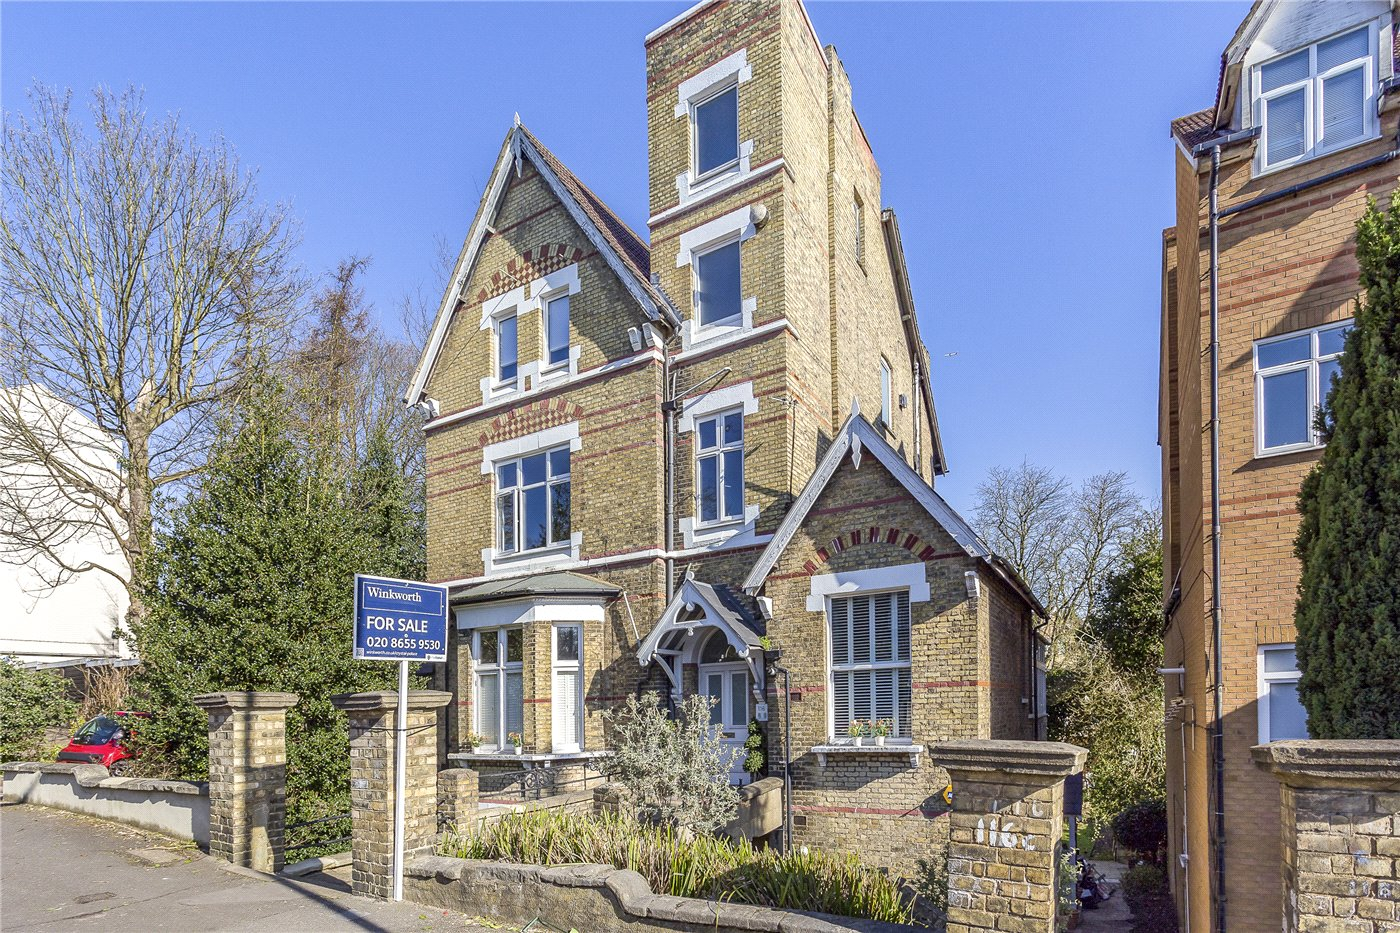 2 Bedroom Property For Sale In Crystal Palace Park Road